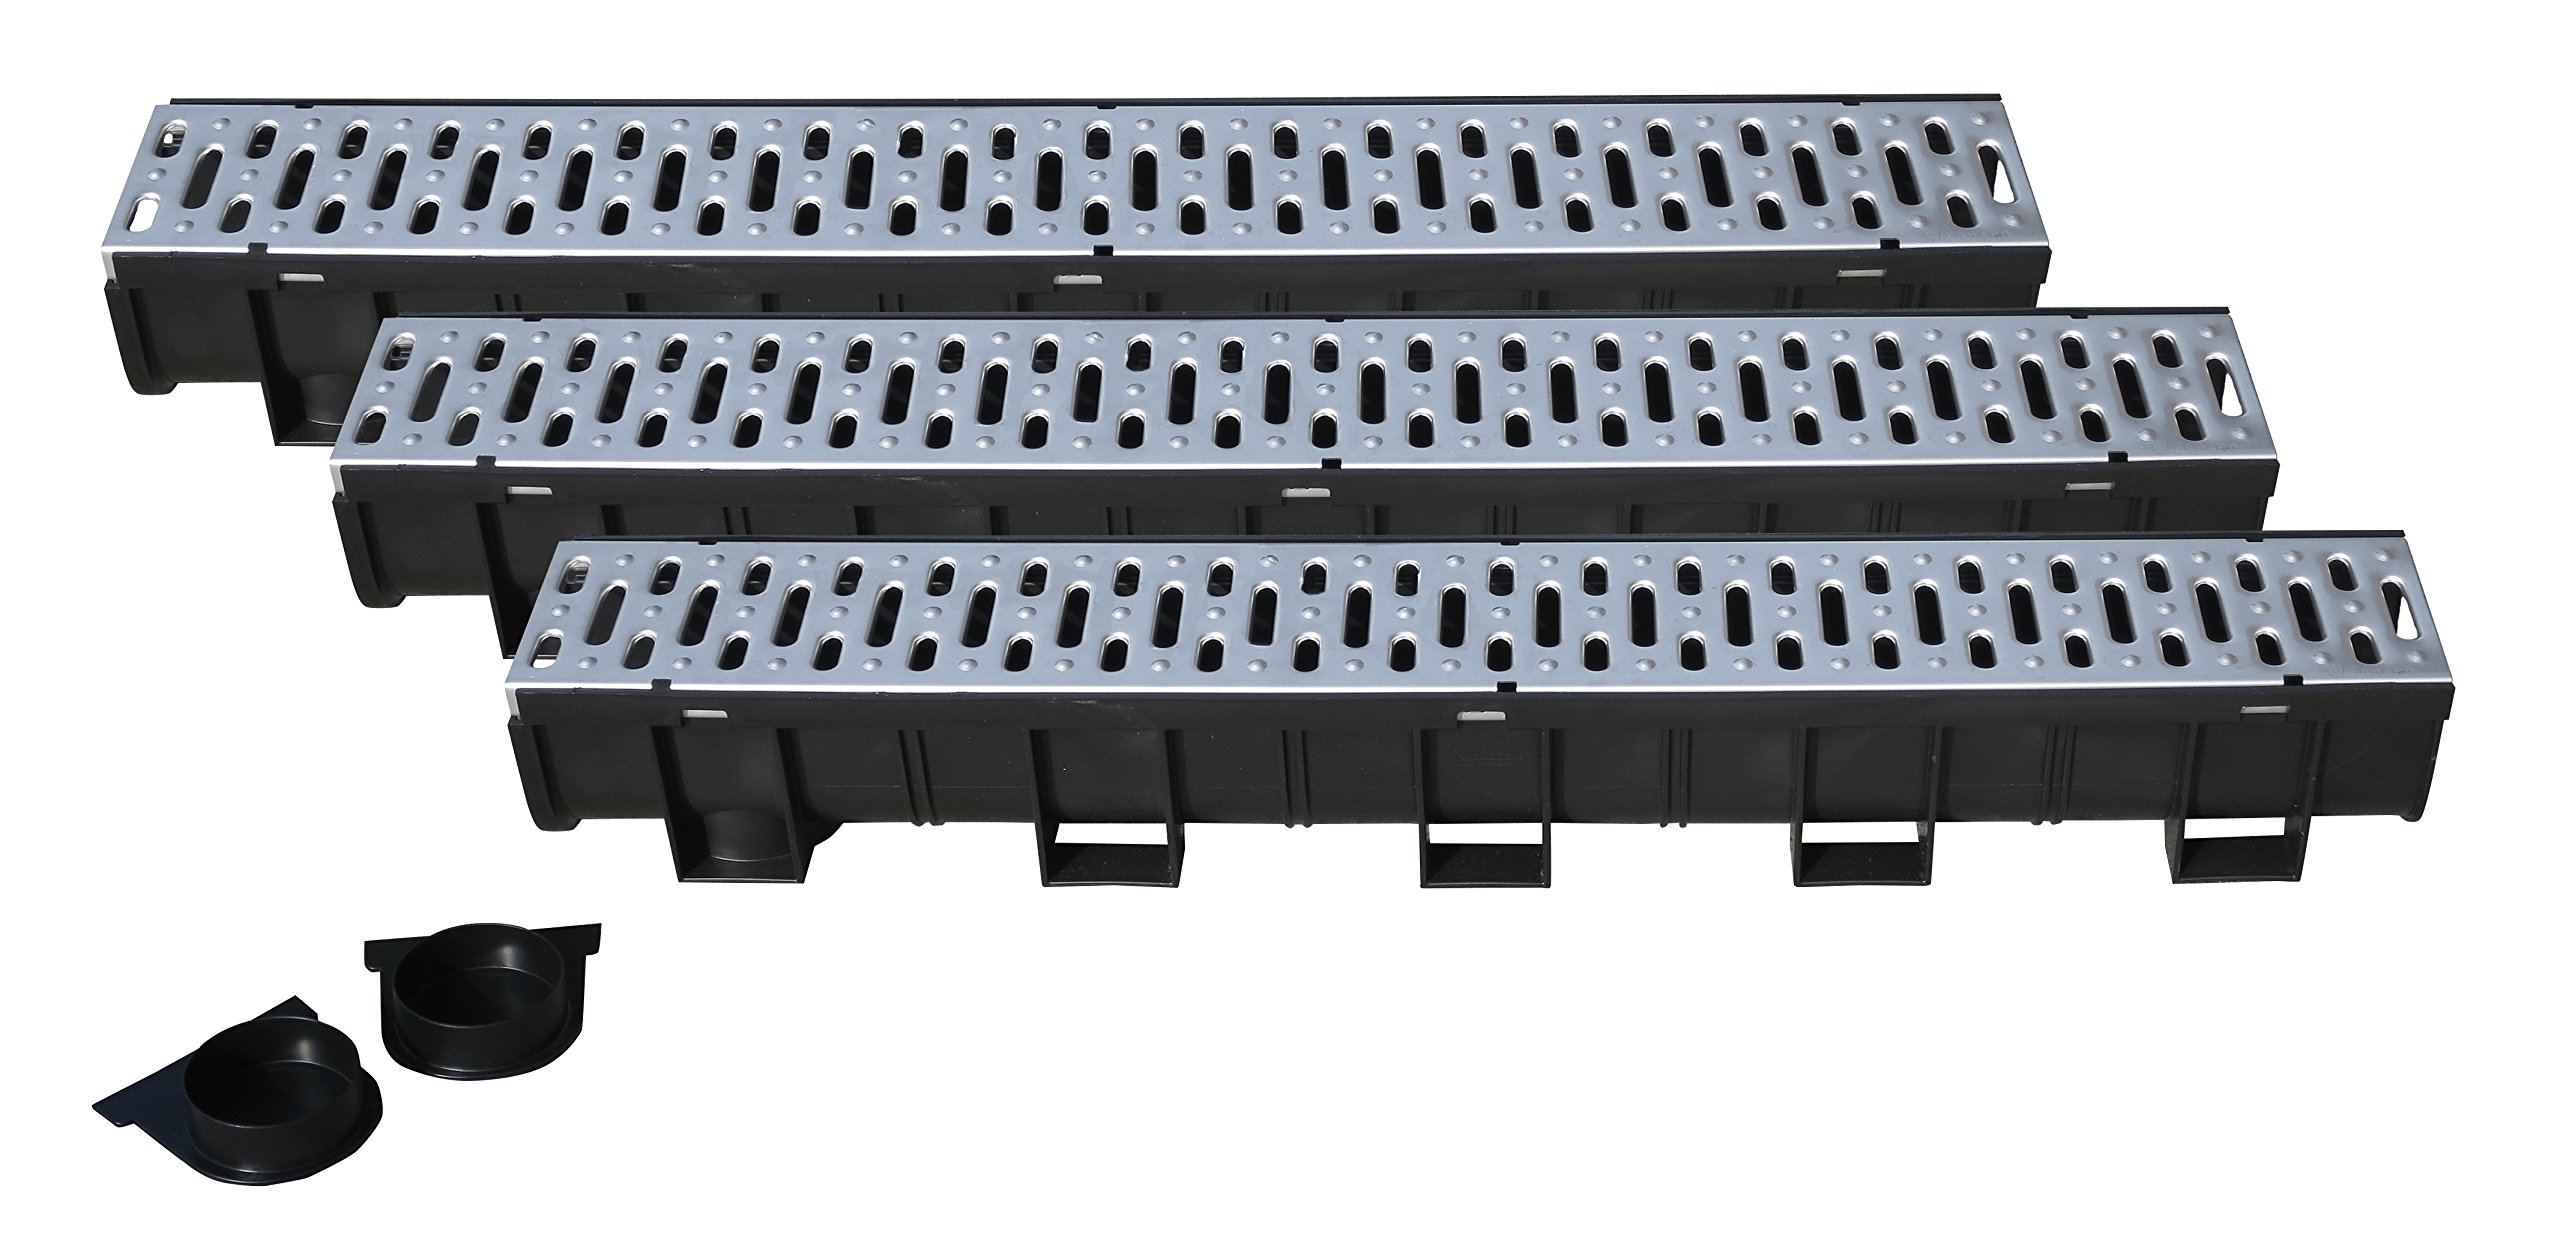 Regular Black Polymer Channel with Pressed Stainless Steel Grate - 3 x 3.33 Ft (10ft) Pack with 1 End Cap & Adaptor